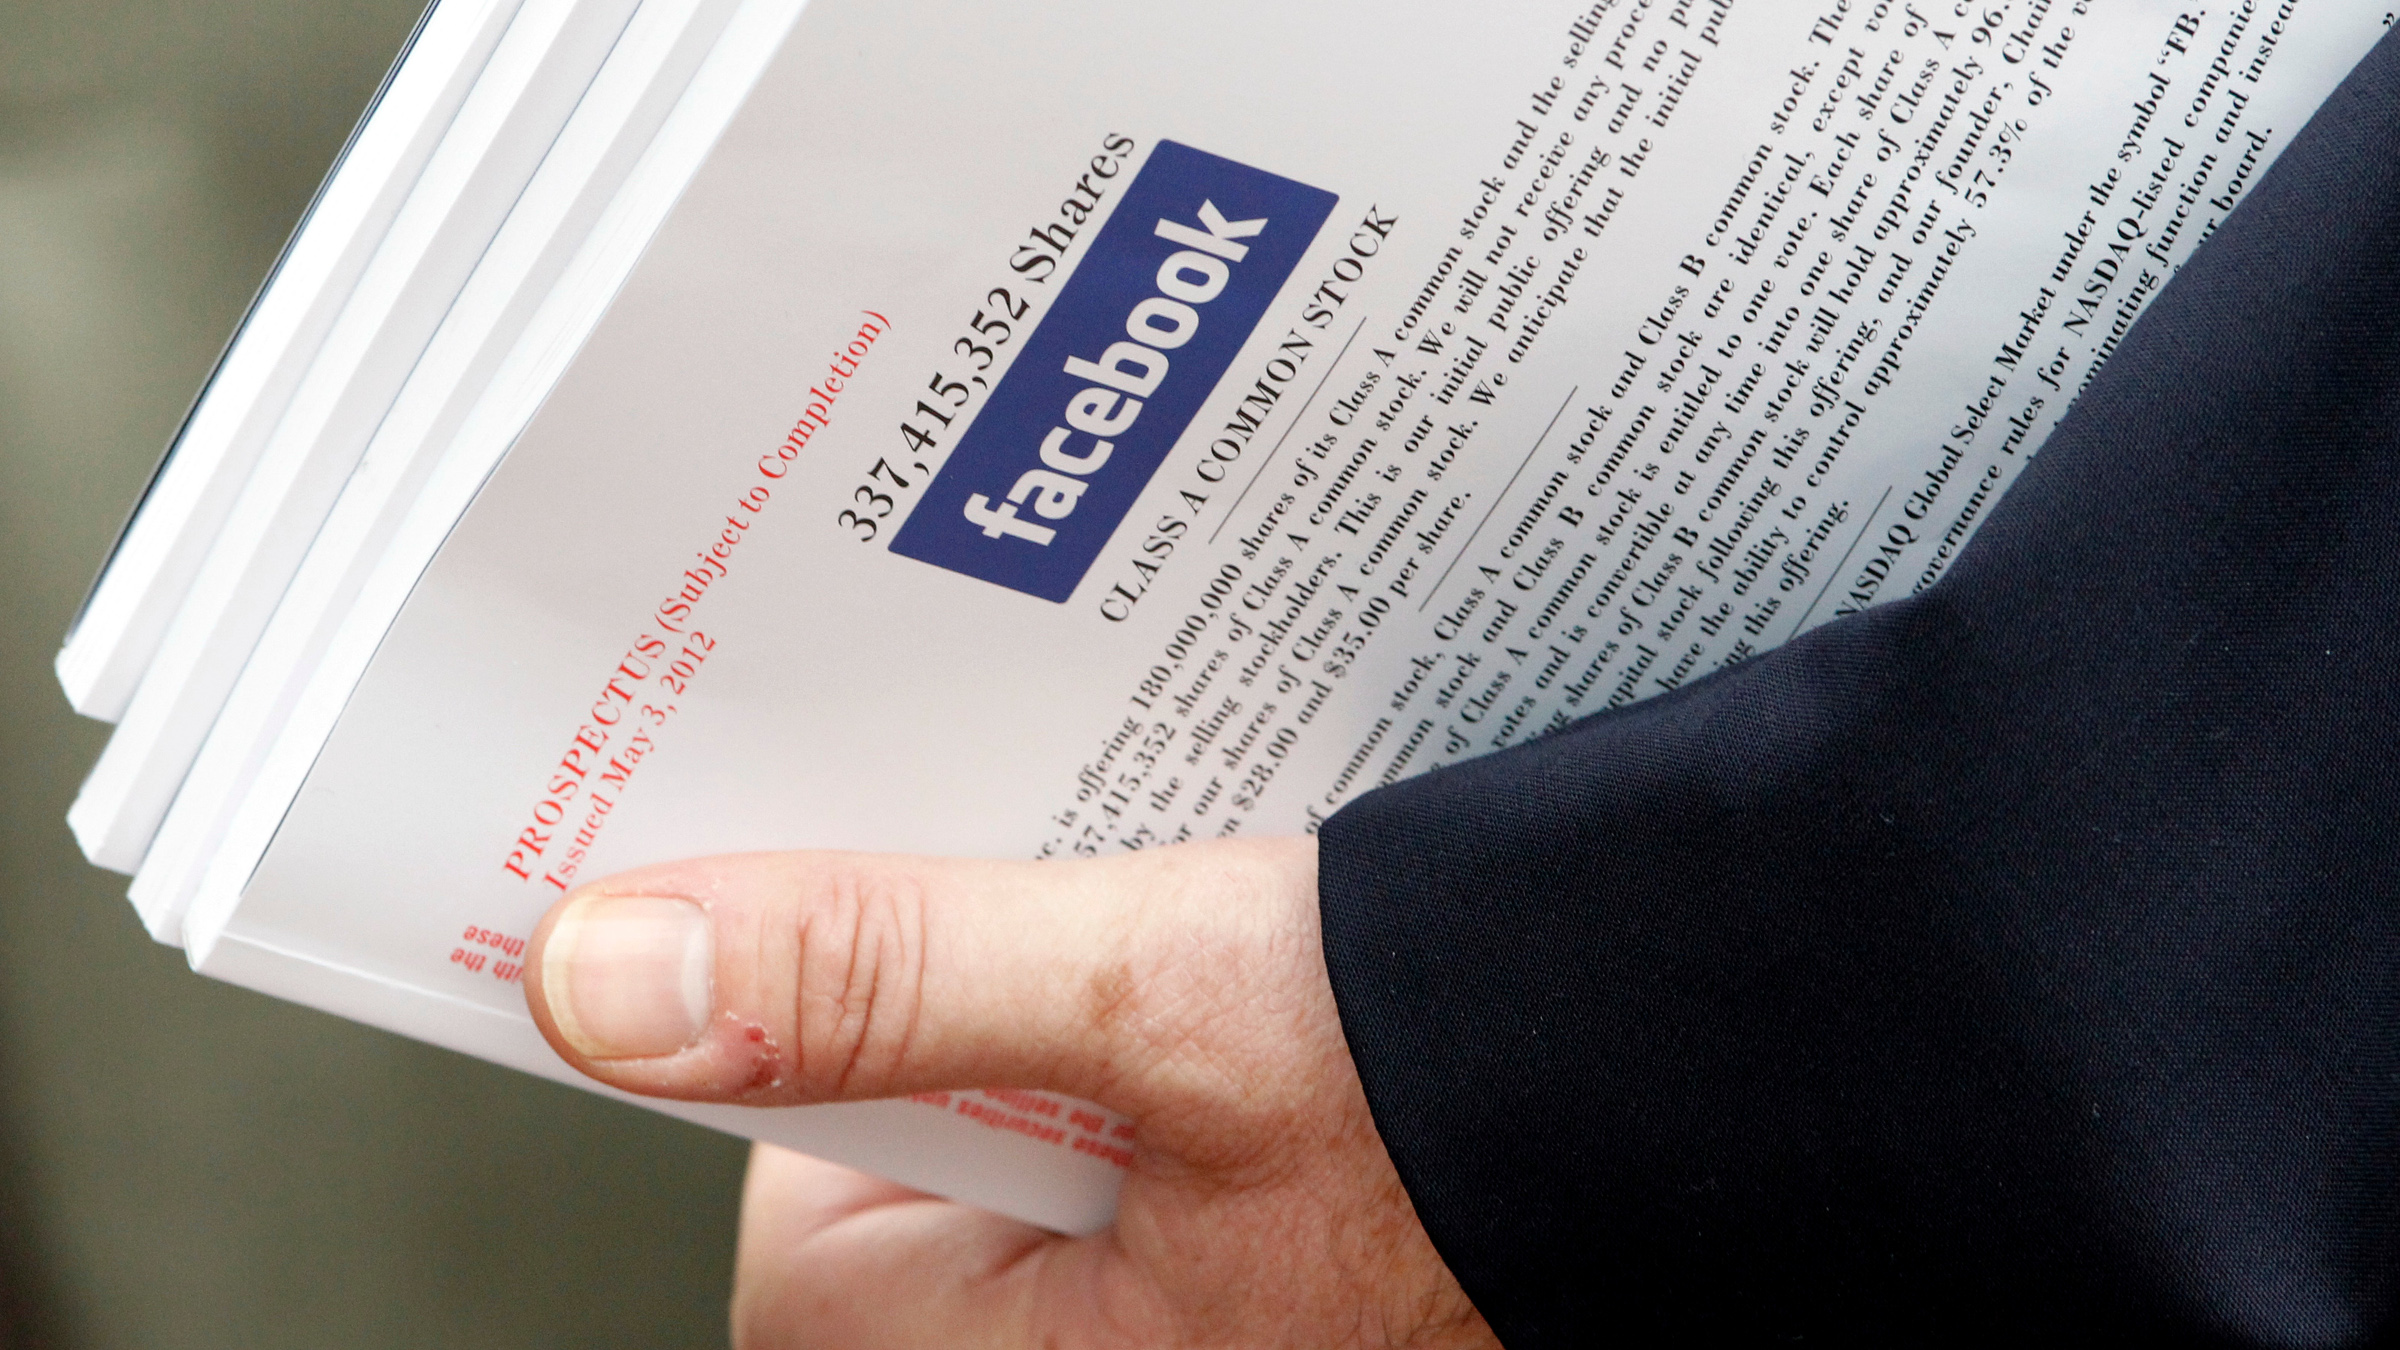 An investor holds prospectus explaining the Facebook stock after attending a show for Facebook Inc's initial public offering at the Four Season's Hotel in Boston, Massachusetts May 8, 2012. Facebook Inc CEO Mark Zuckerberg took questions in New York about the No. 1 social network's slowing revenue growth and its $1 billion Instagram purchase, kicking off a cross-country roadshow on Monday to promote its $10 billion initial public offering.